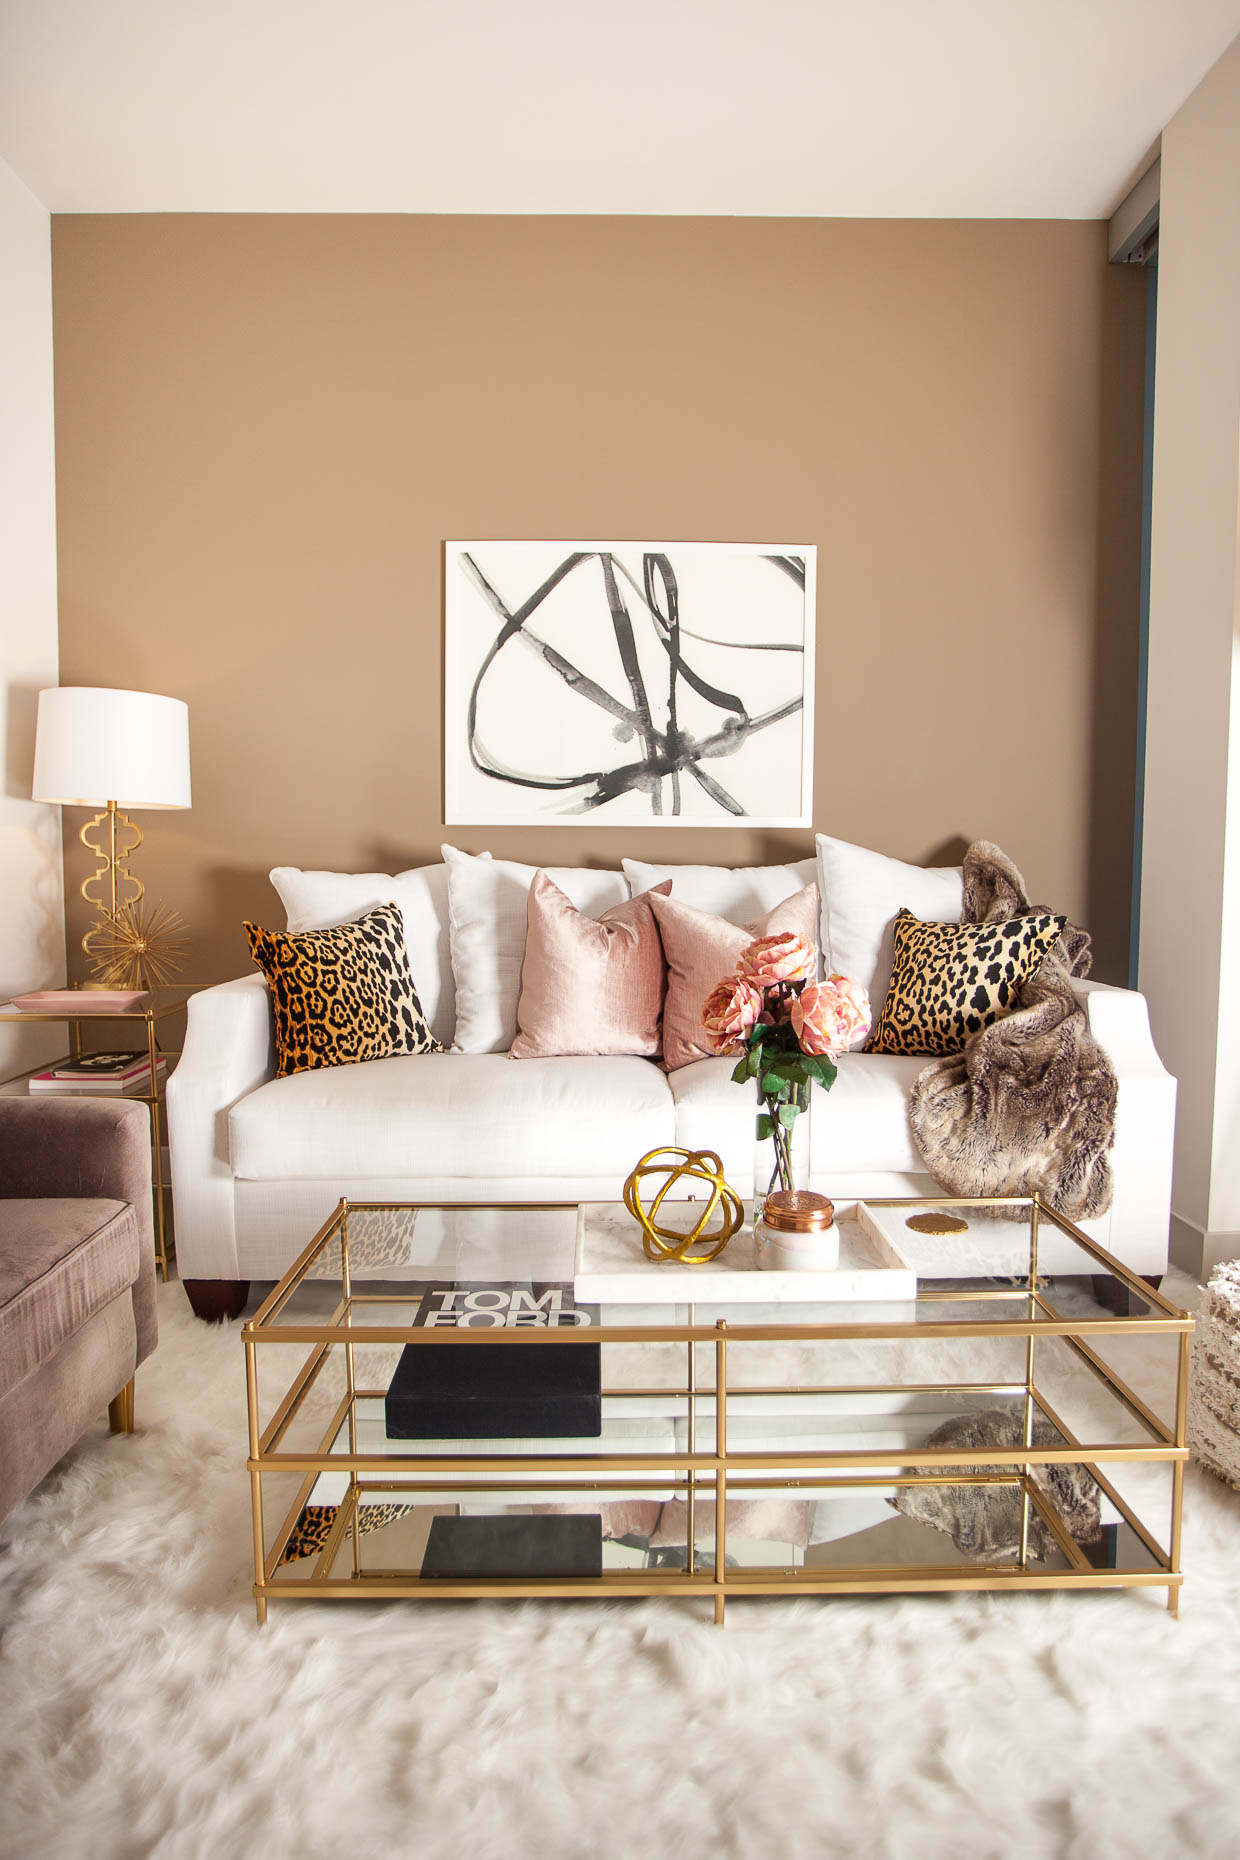 Rose Gold Home Décor Give Your A Golden Touch Of Elegance And Beauty Interior Design Pro